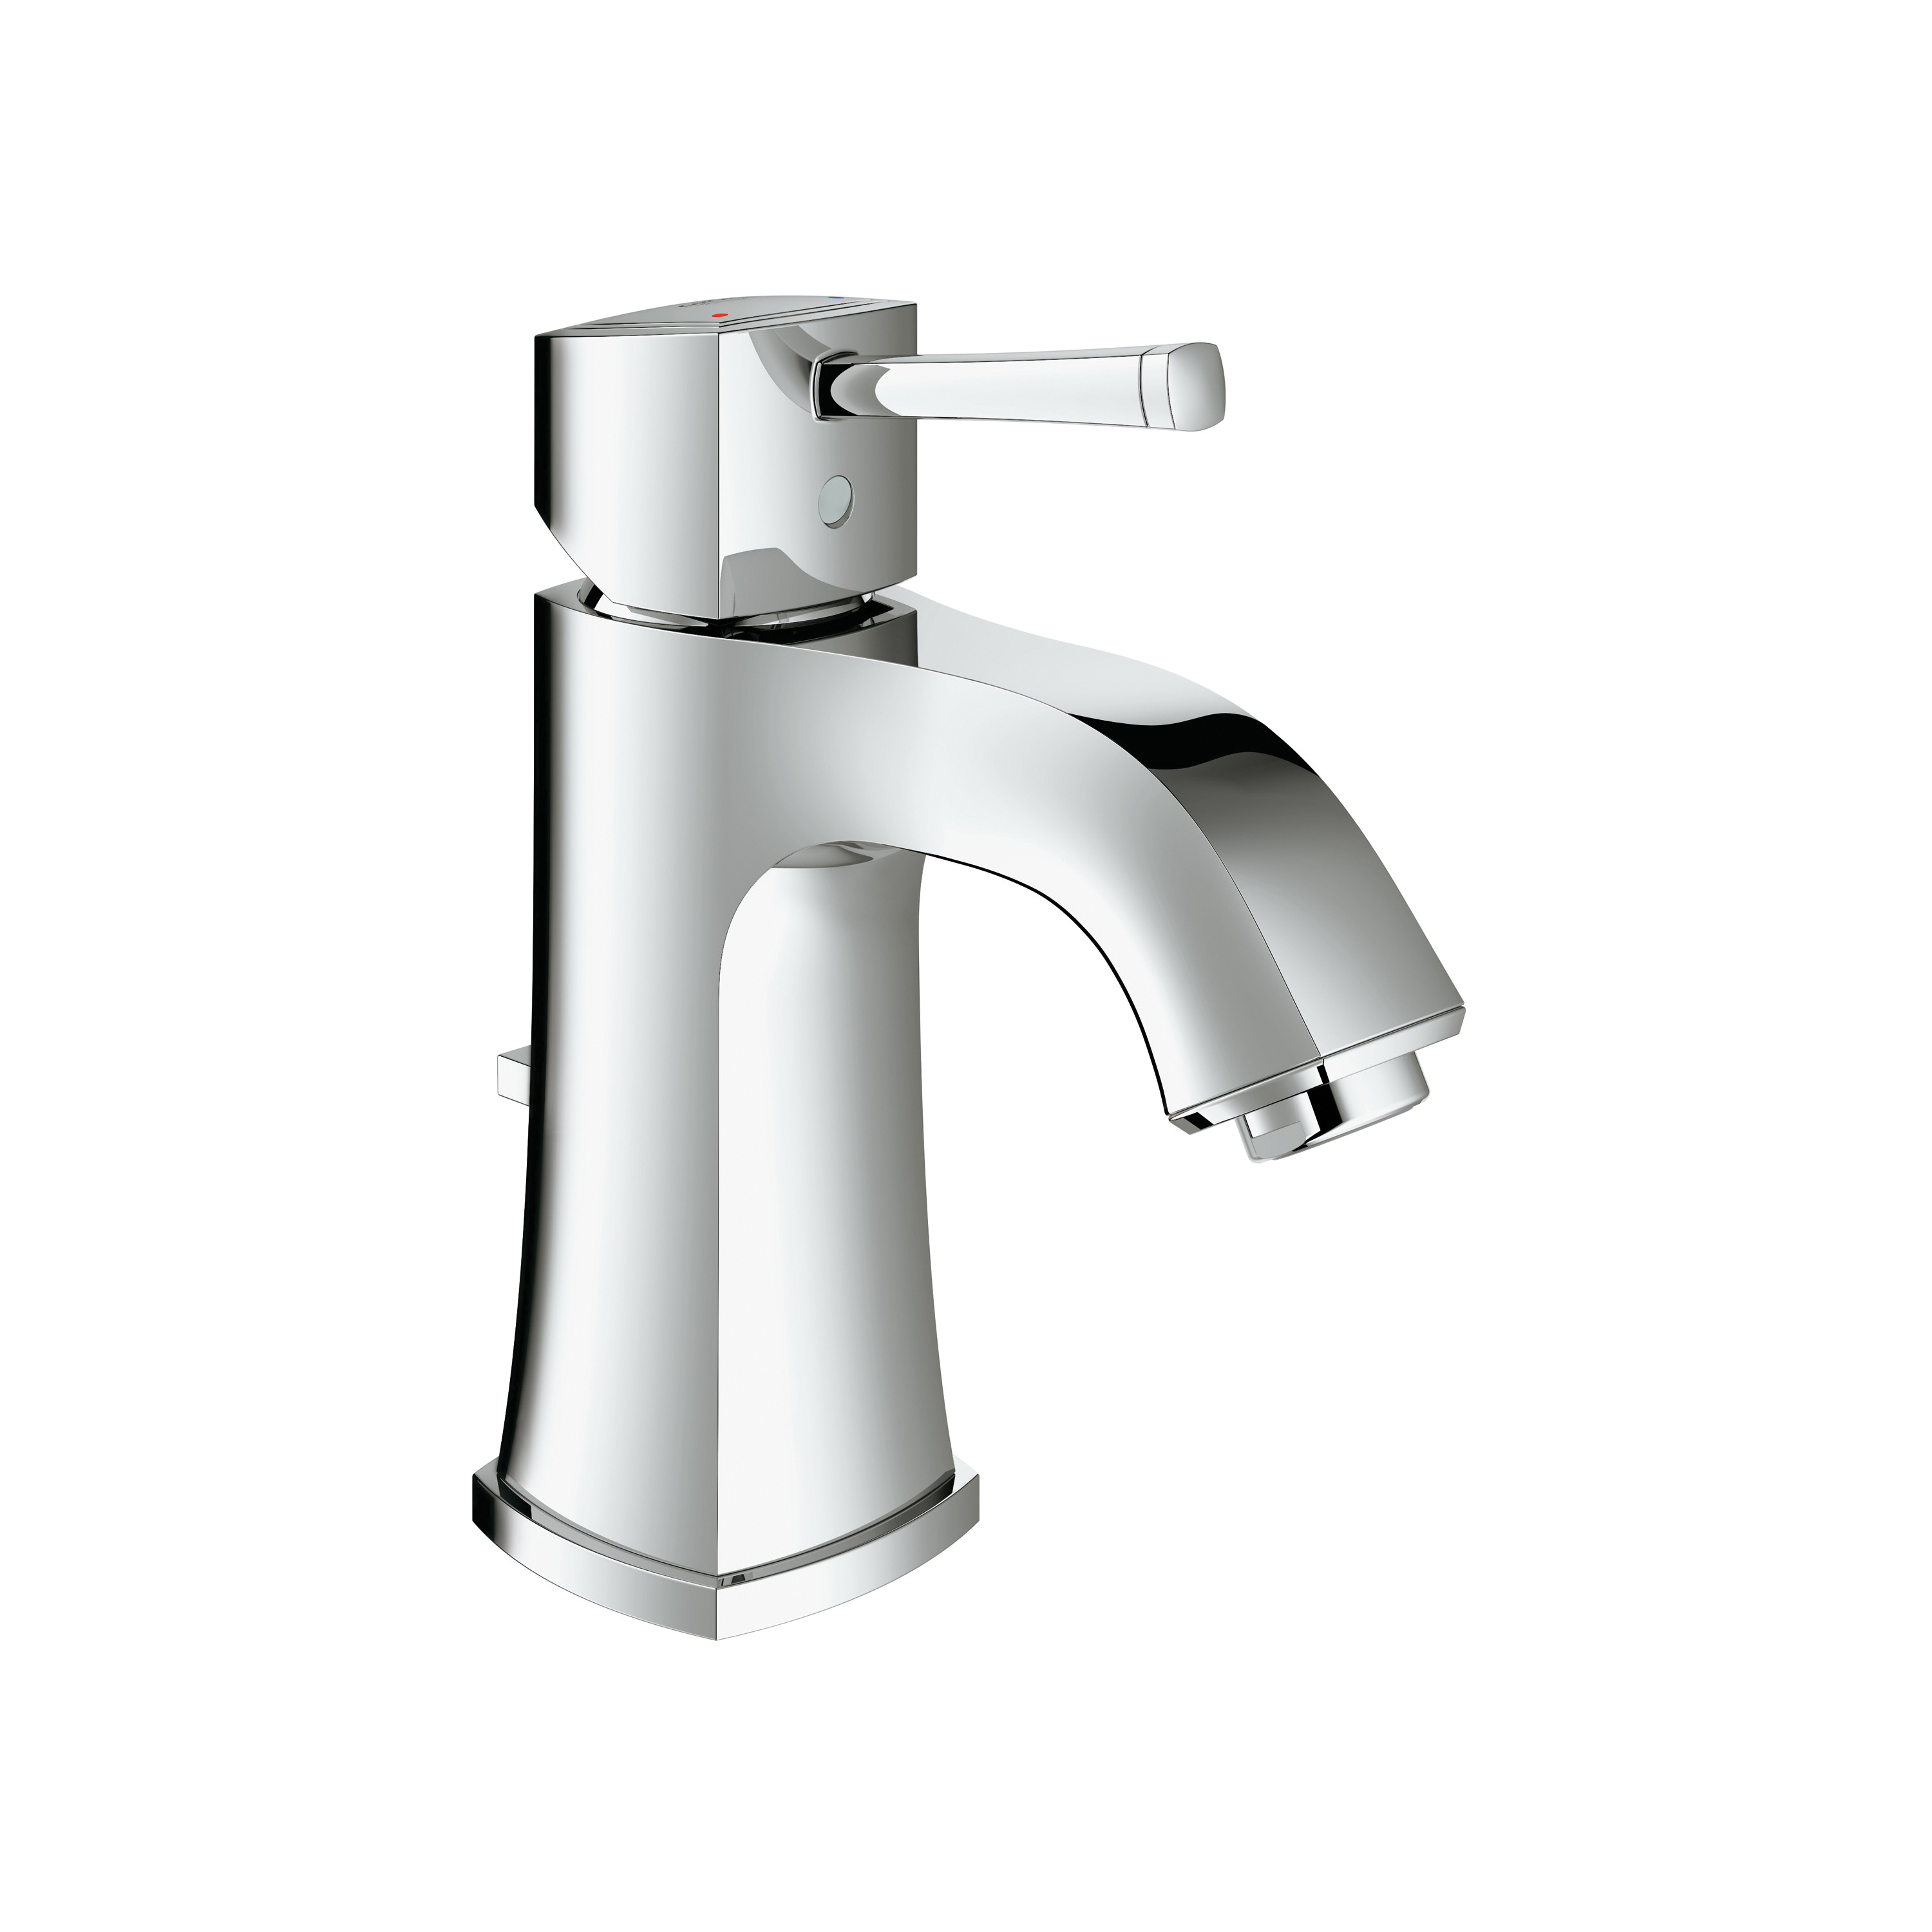 GROHE 2331100A Grandera™ Medium Bathroom Faucet With Temperature Limiter, 1.2 gpm Flow Rate, 3-1/4 in H Spout, 1 Handles, Pop-Up Drain, 1 Faucet Holes, StarLight® Polished Chrome, Function: Traditional